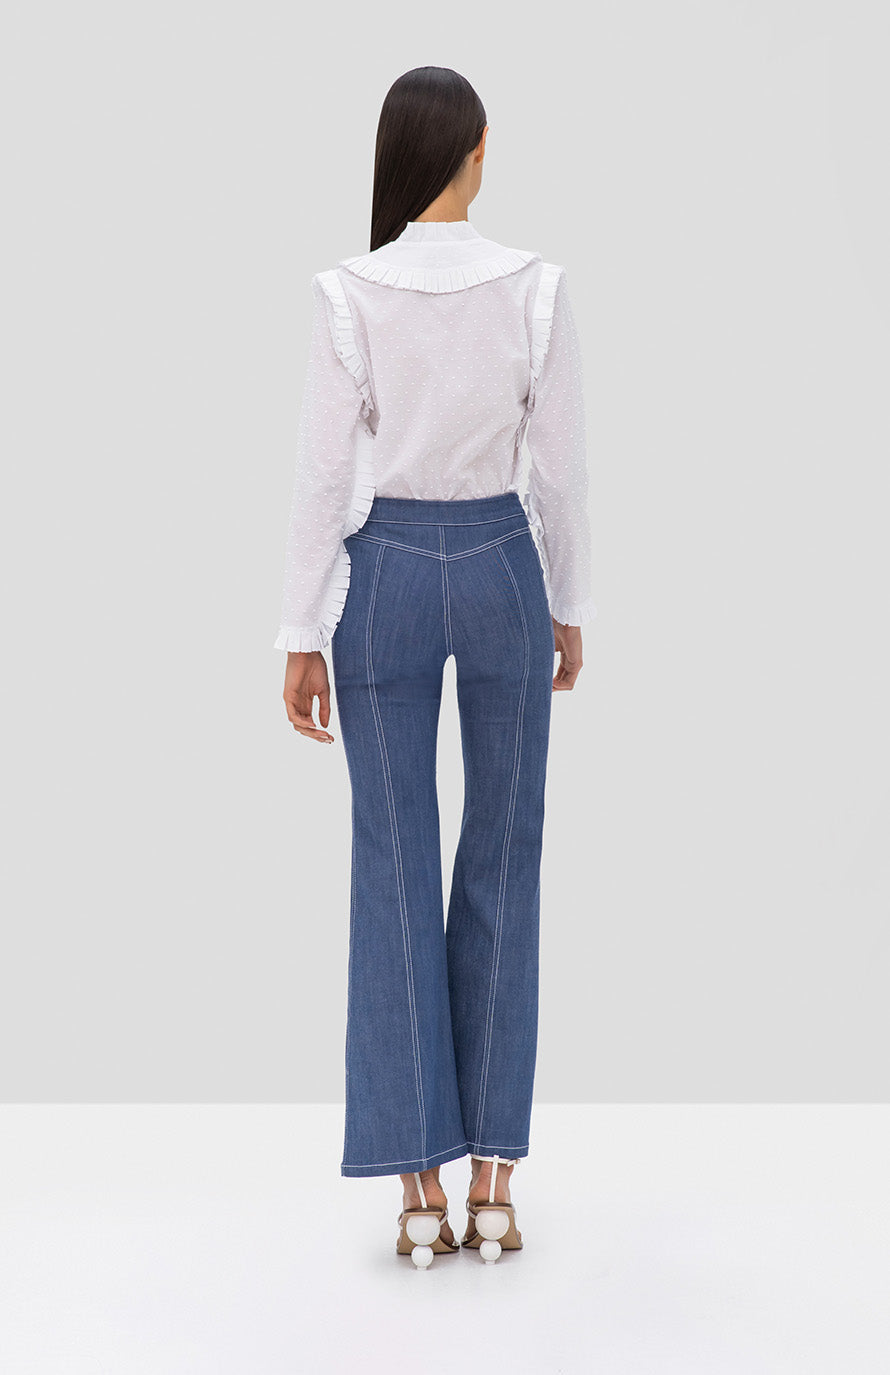 Alexis Claremont Pant in Stone Blue and Burgos Top in White from the Pre Fall 2019 Ready To Wear Collection - Rear View